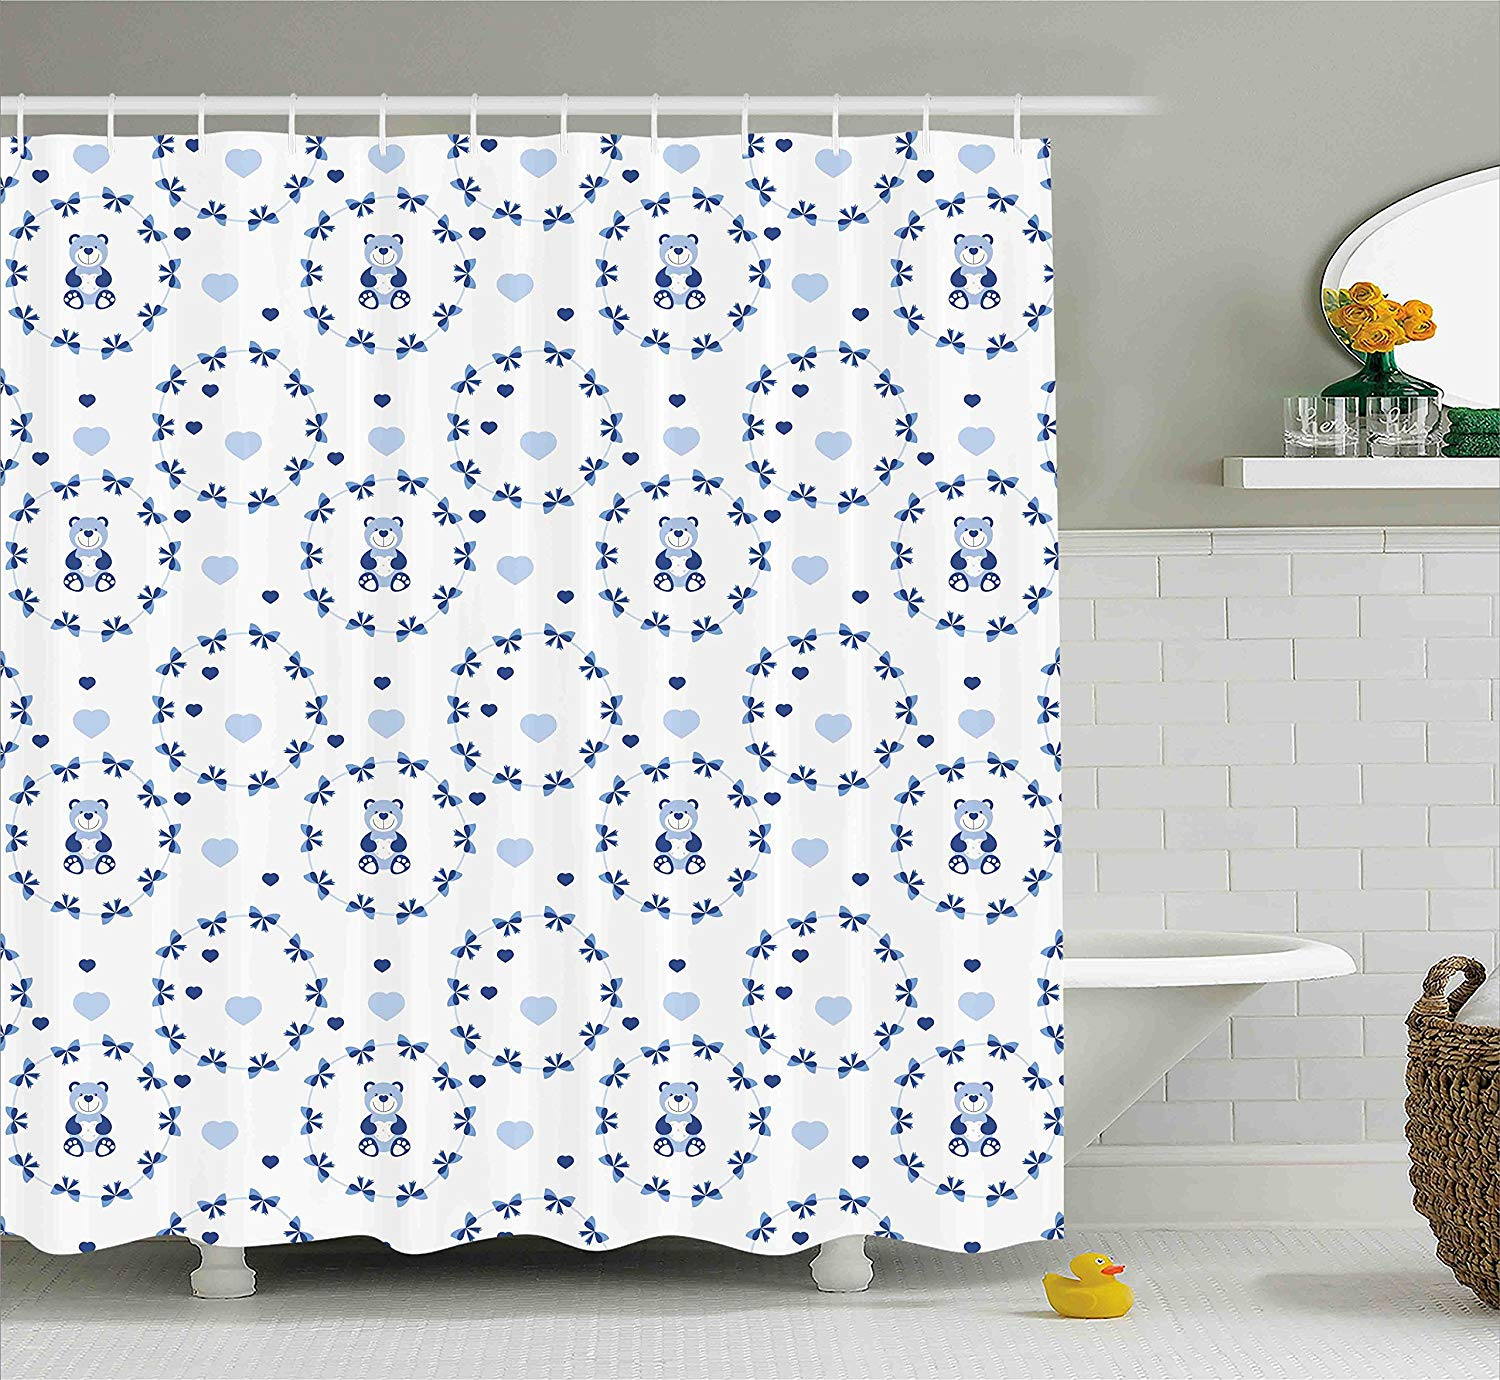 Us 17 42 30 Off Shower Curtain Ribbons Teddy Bears Children Hearts Art Fabric Bathroom Decor Set With Hooks Navy Blue Purple Grey White Decor In